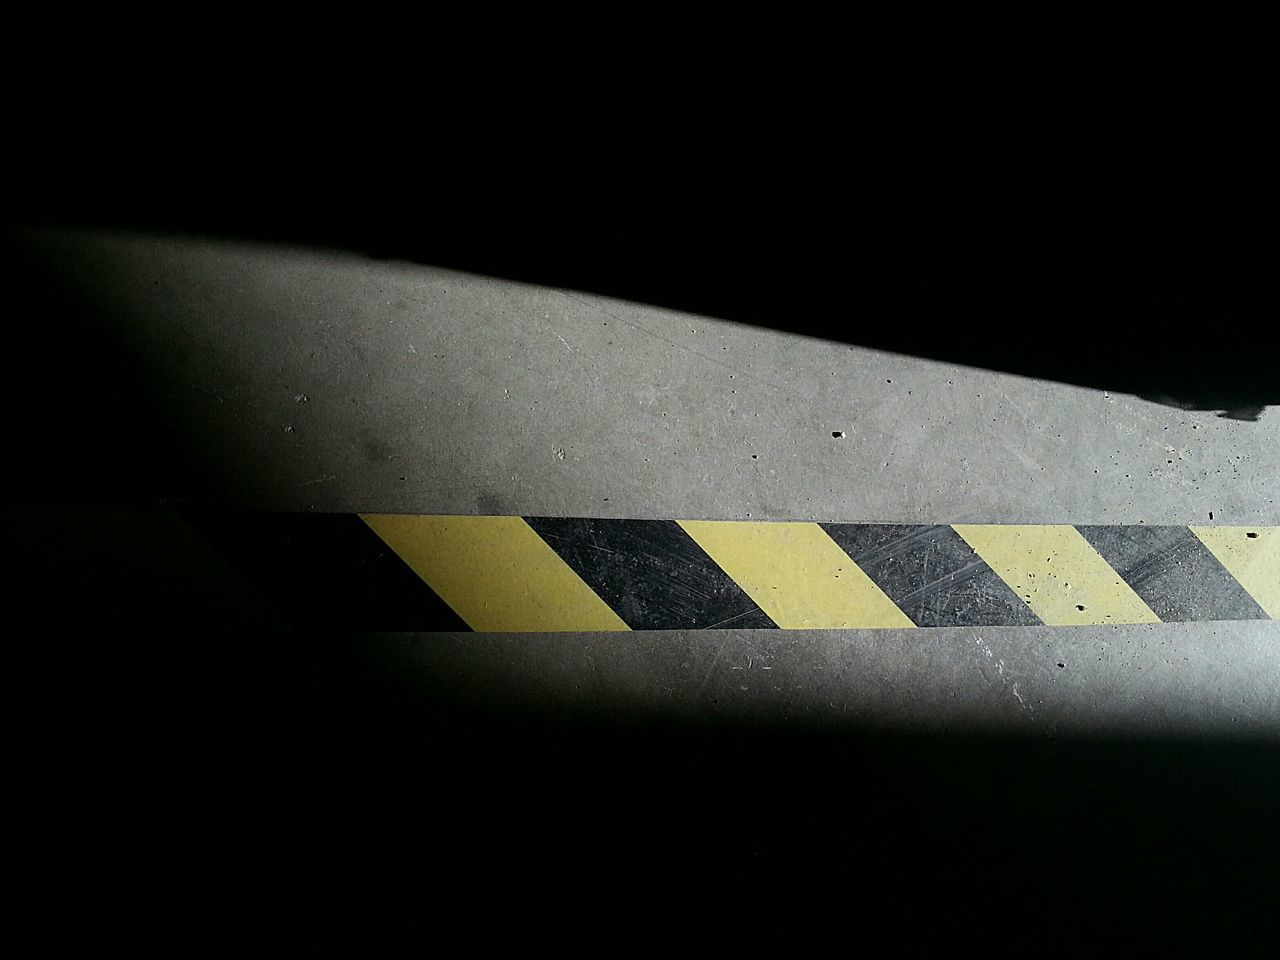 Caution LINE Caution Tape Symbolic  Shadowplay Everything In Its Place Concrete Concrete Floor Simplicity Minimalism Simple Things Caution Sign Up Close Street Photography Yield Guiding Straight Lines Yellow And Black Simple Shadow And Light Conceptual Everyday Objects Dotted Line Design Concept Angles And Lines Angles